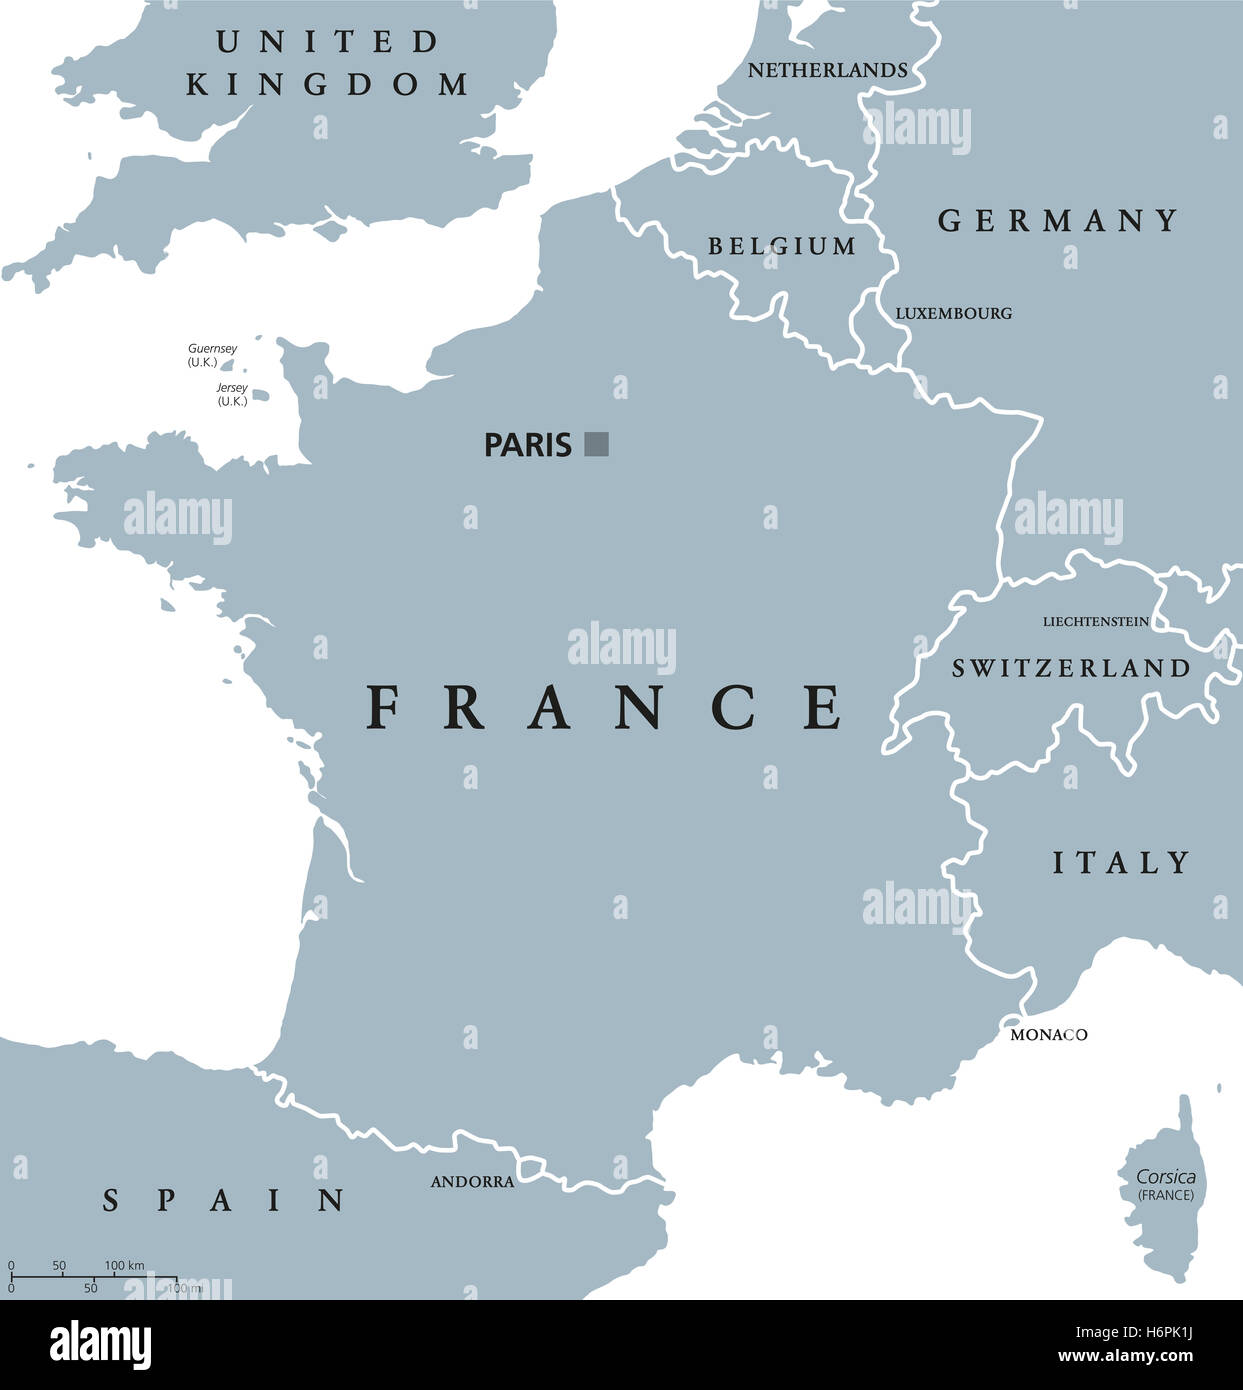 France Political Map With Capital Paris Corsica National Borders - Germany map neighbouring countries